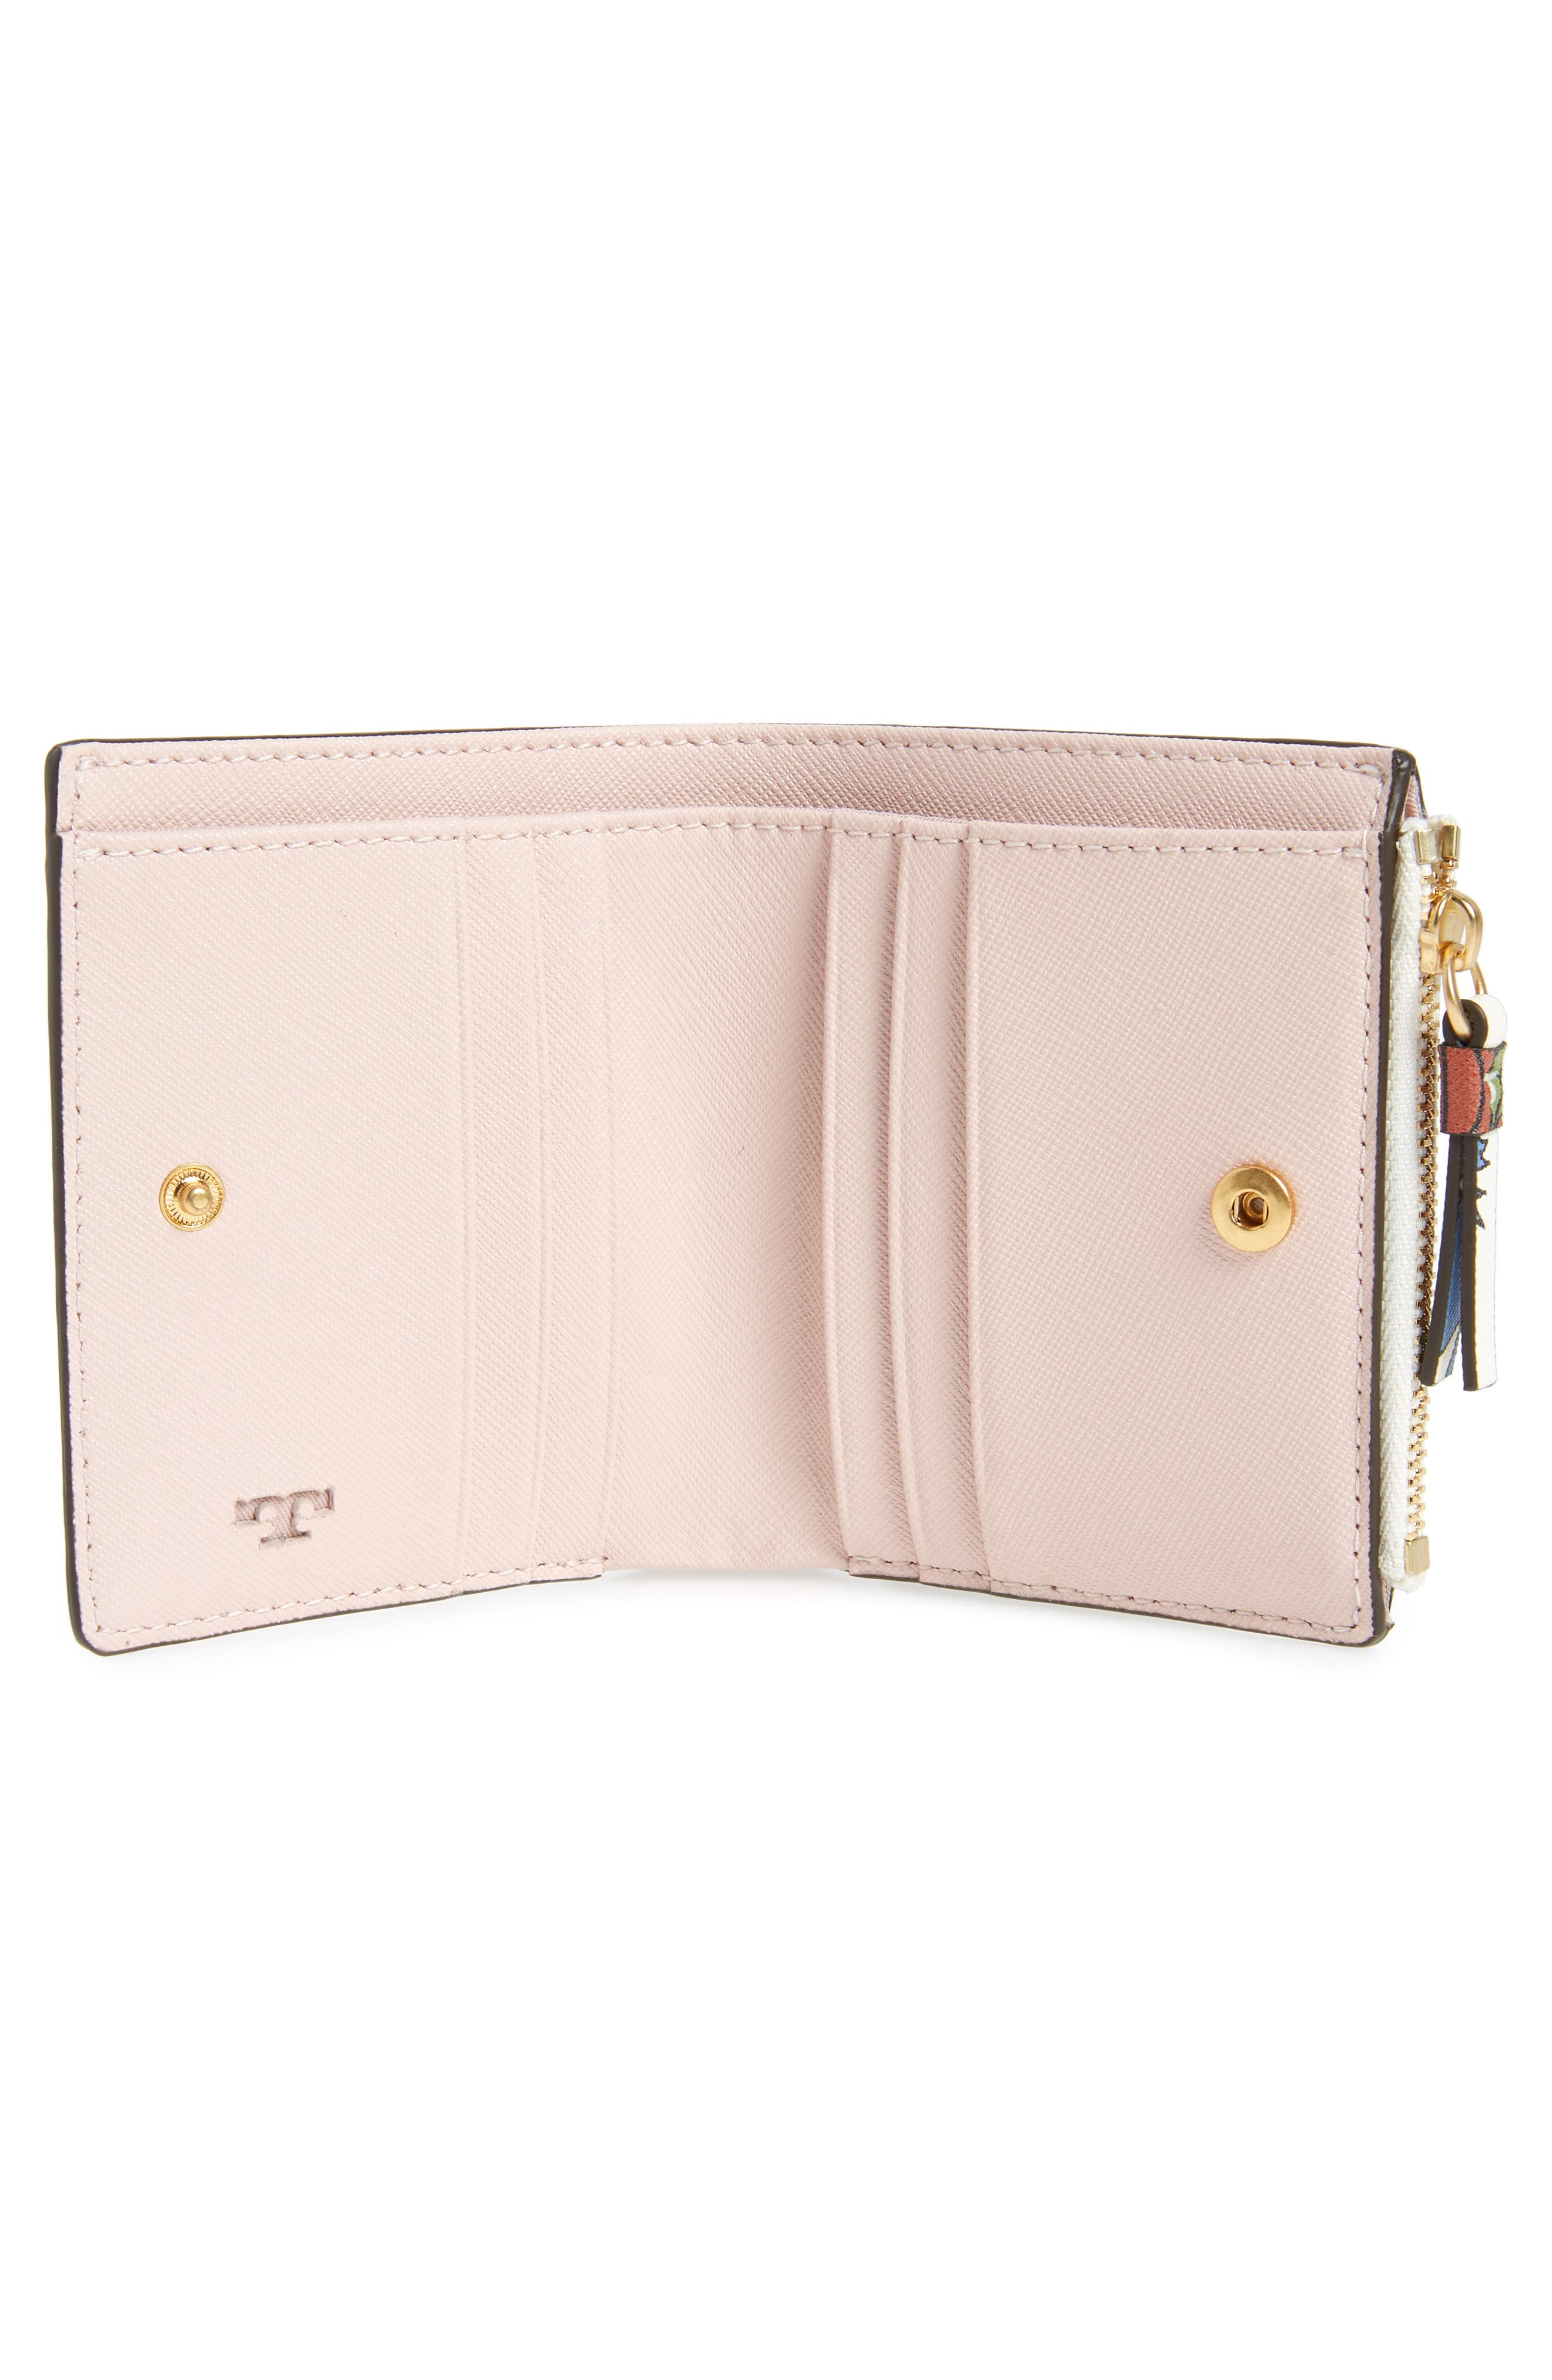 Mini Robinson Floral Leather Wallet,                             Alternate thumbnail 2, color,                             IVORY MEADOW SWEET